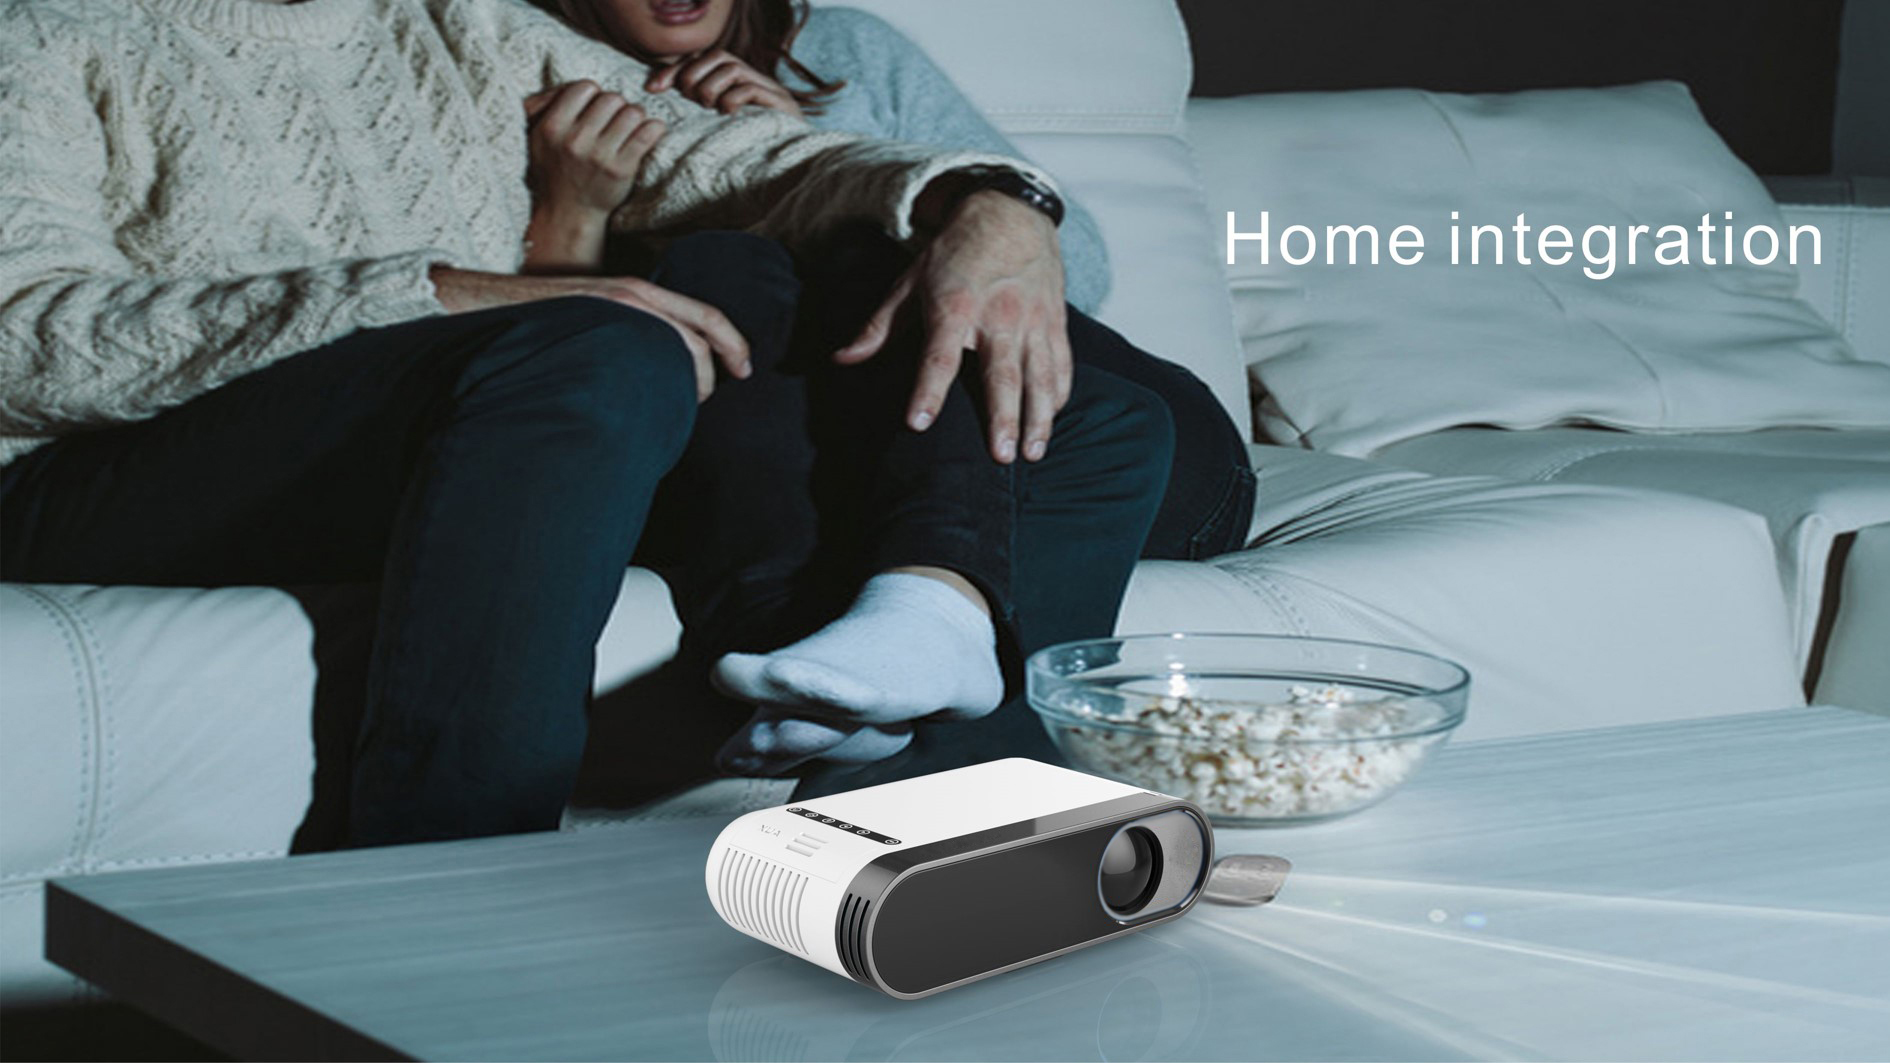 MG20 800 lumens LCD Projector Full HD 1080P Projector 320 x 240 Native Resolution Home Projector